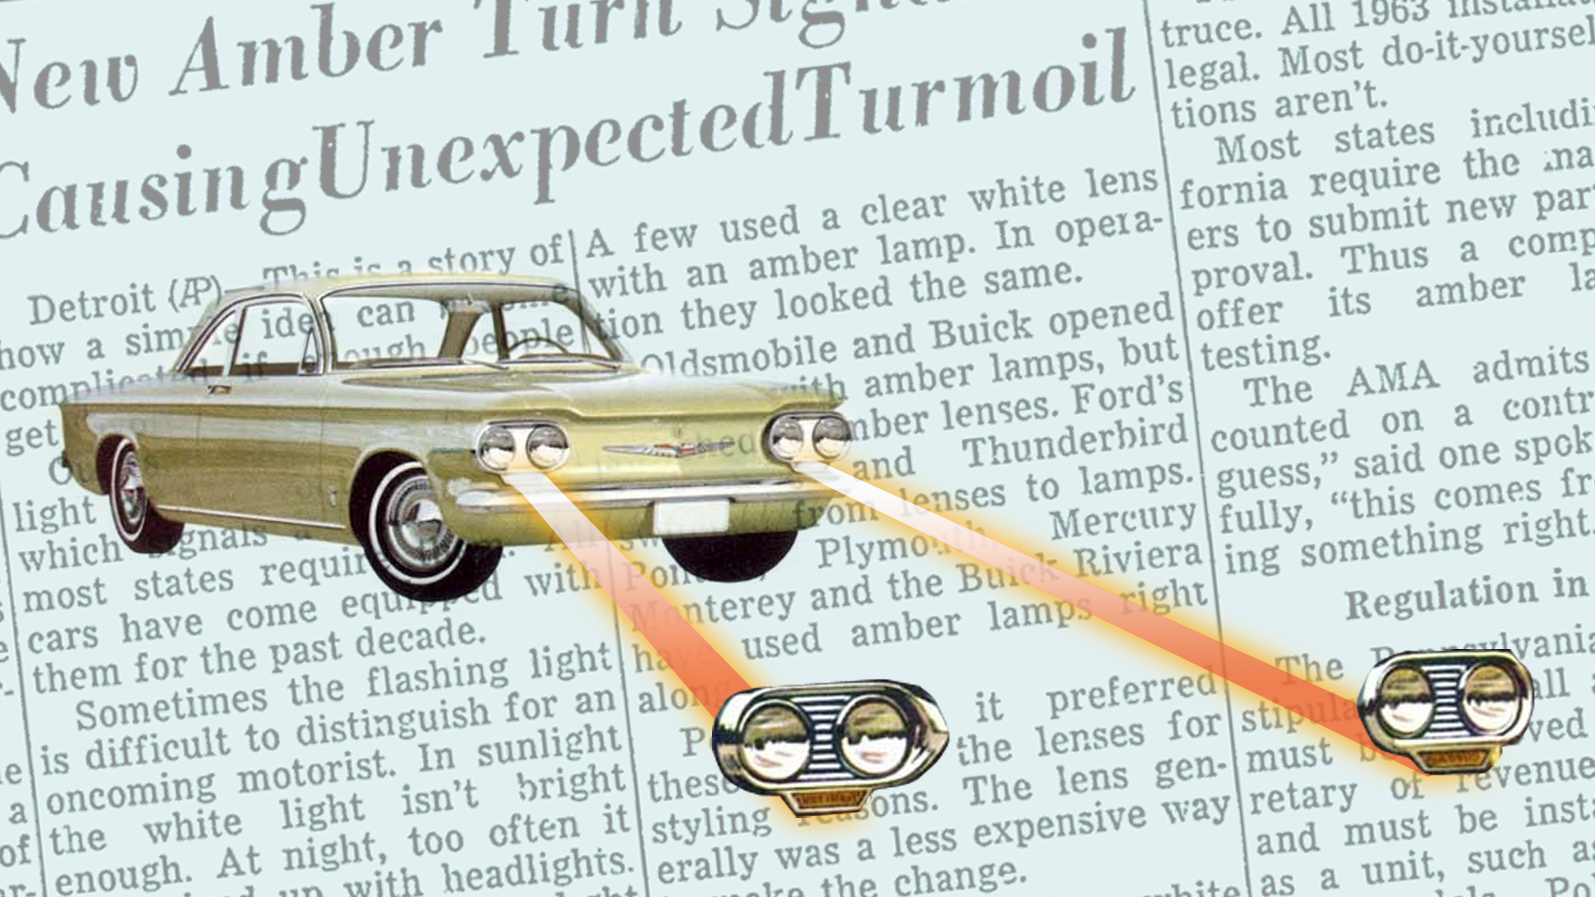 When Turn Signals Switched From White To Amber 'Unexpected Turmoil' Gripped The Nation